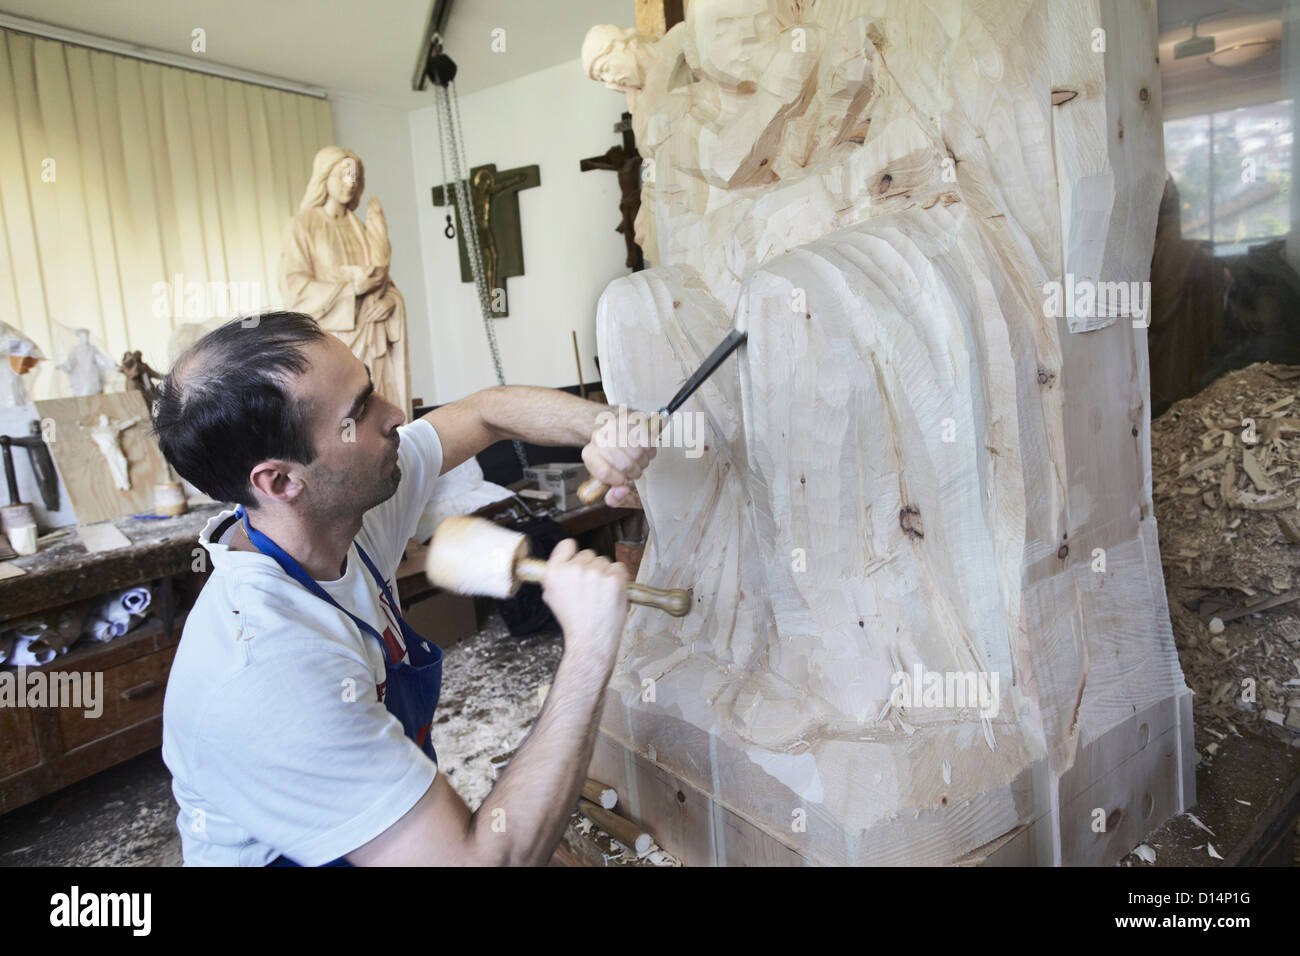 Sculptor chiseling figure from wood Stock Photo